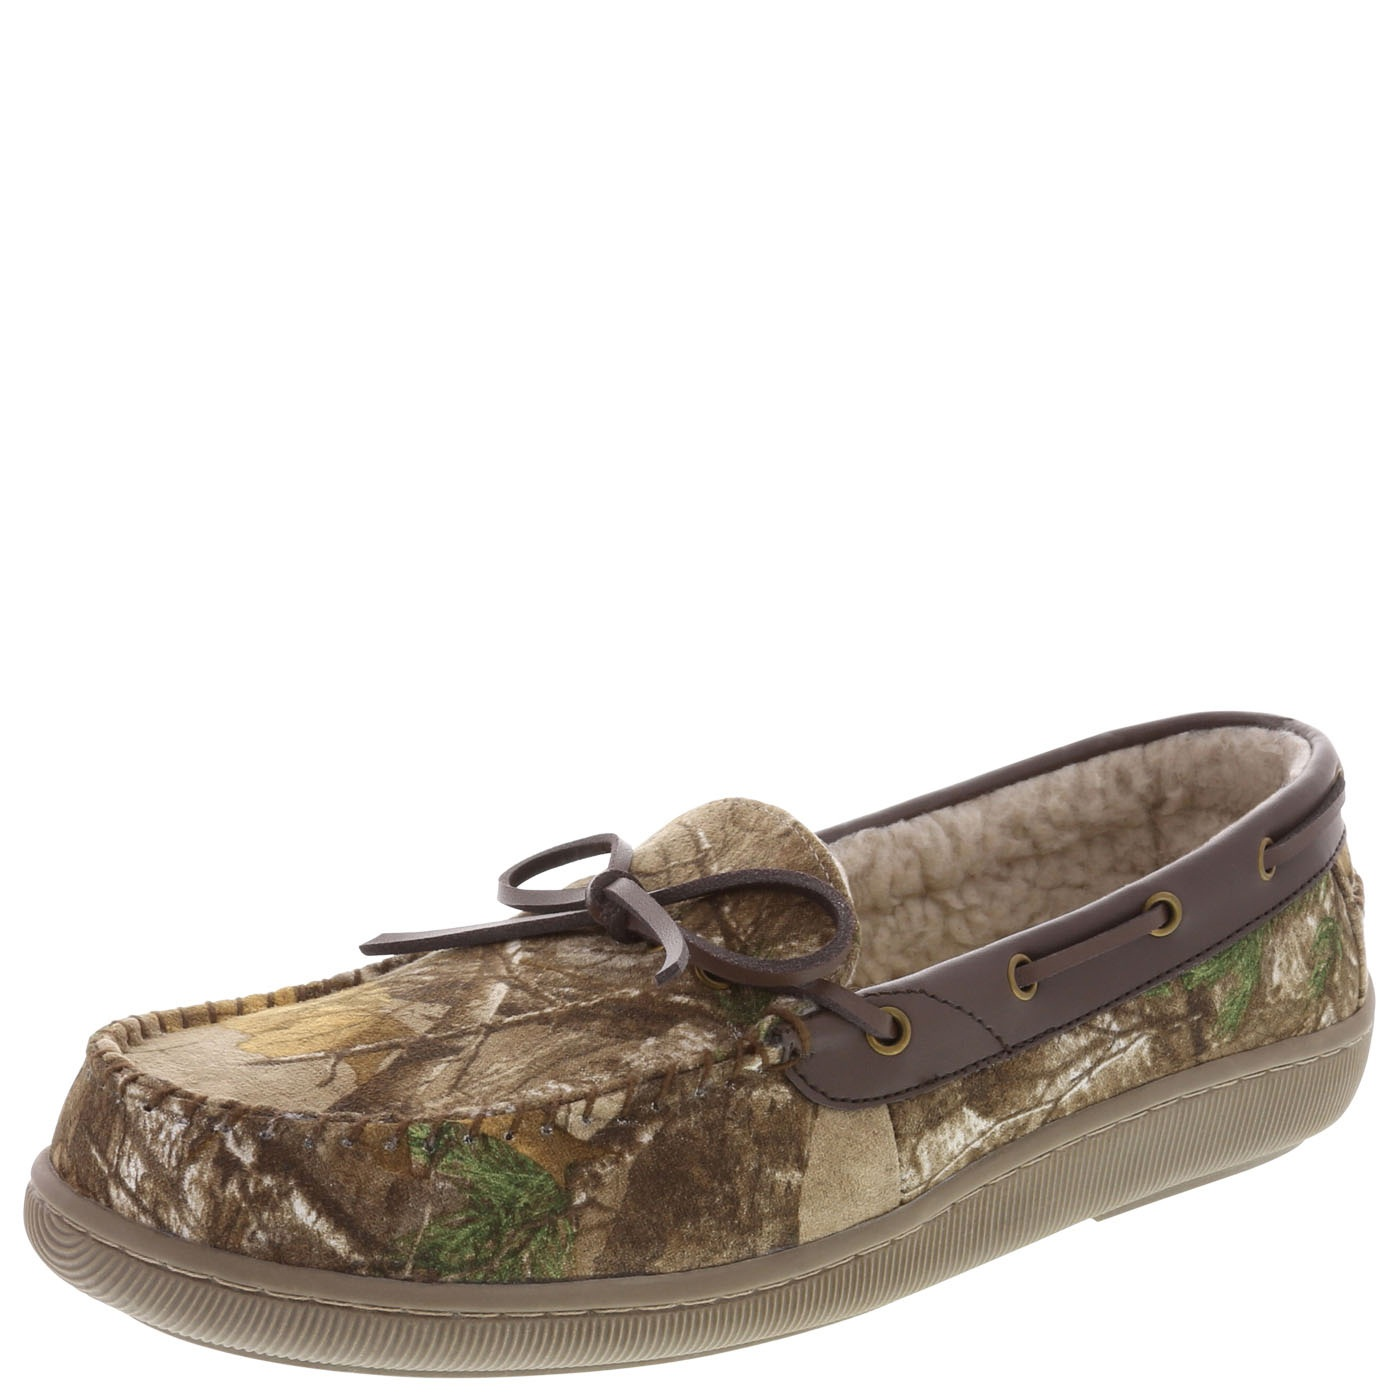 Realtree Camo Slippers By Payless Find Products Realtree